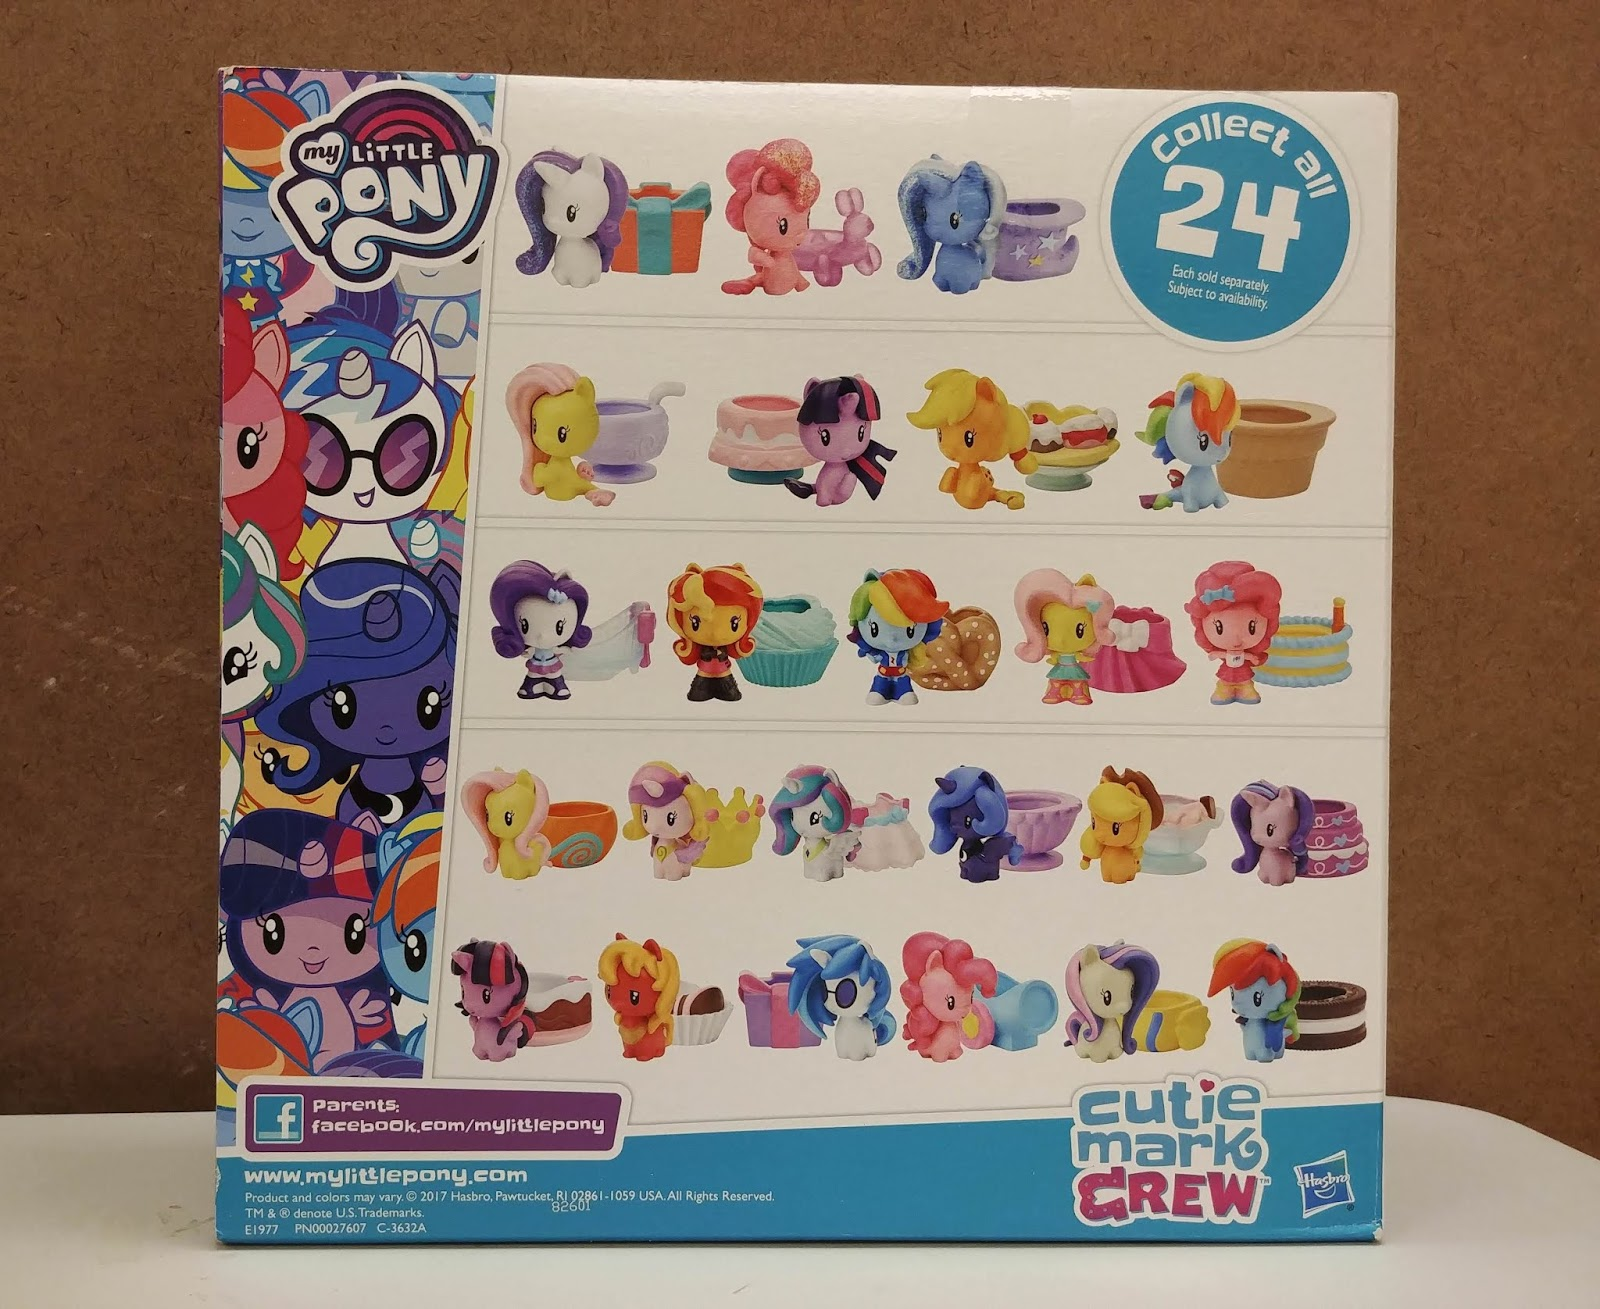 Equestria Daily - MLP Stuff!: Series 2 of Cutie Mark Crew Appearing